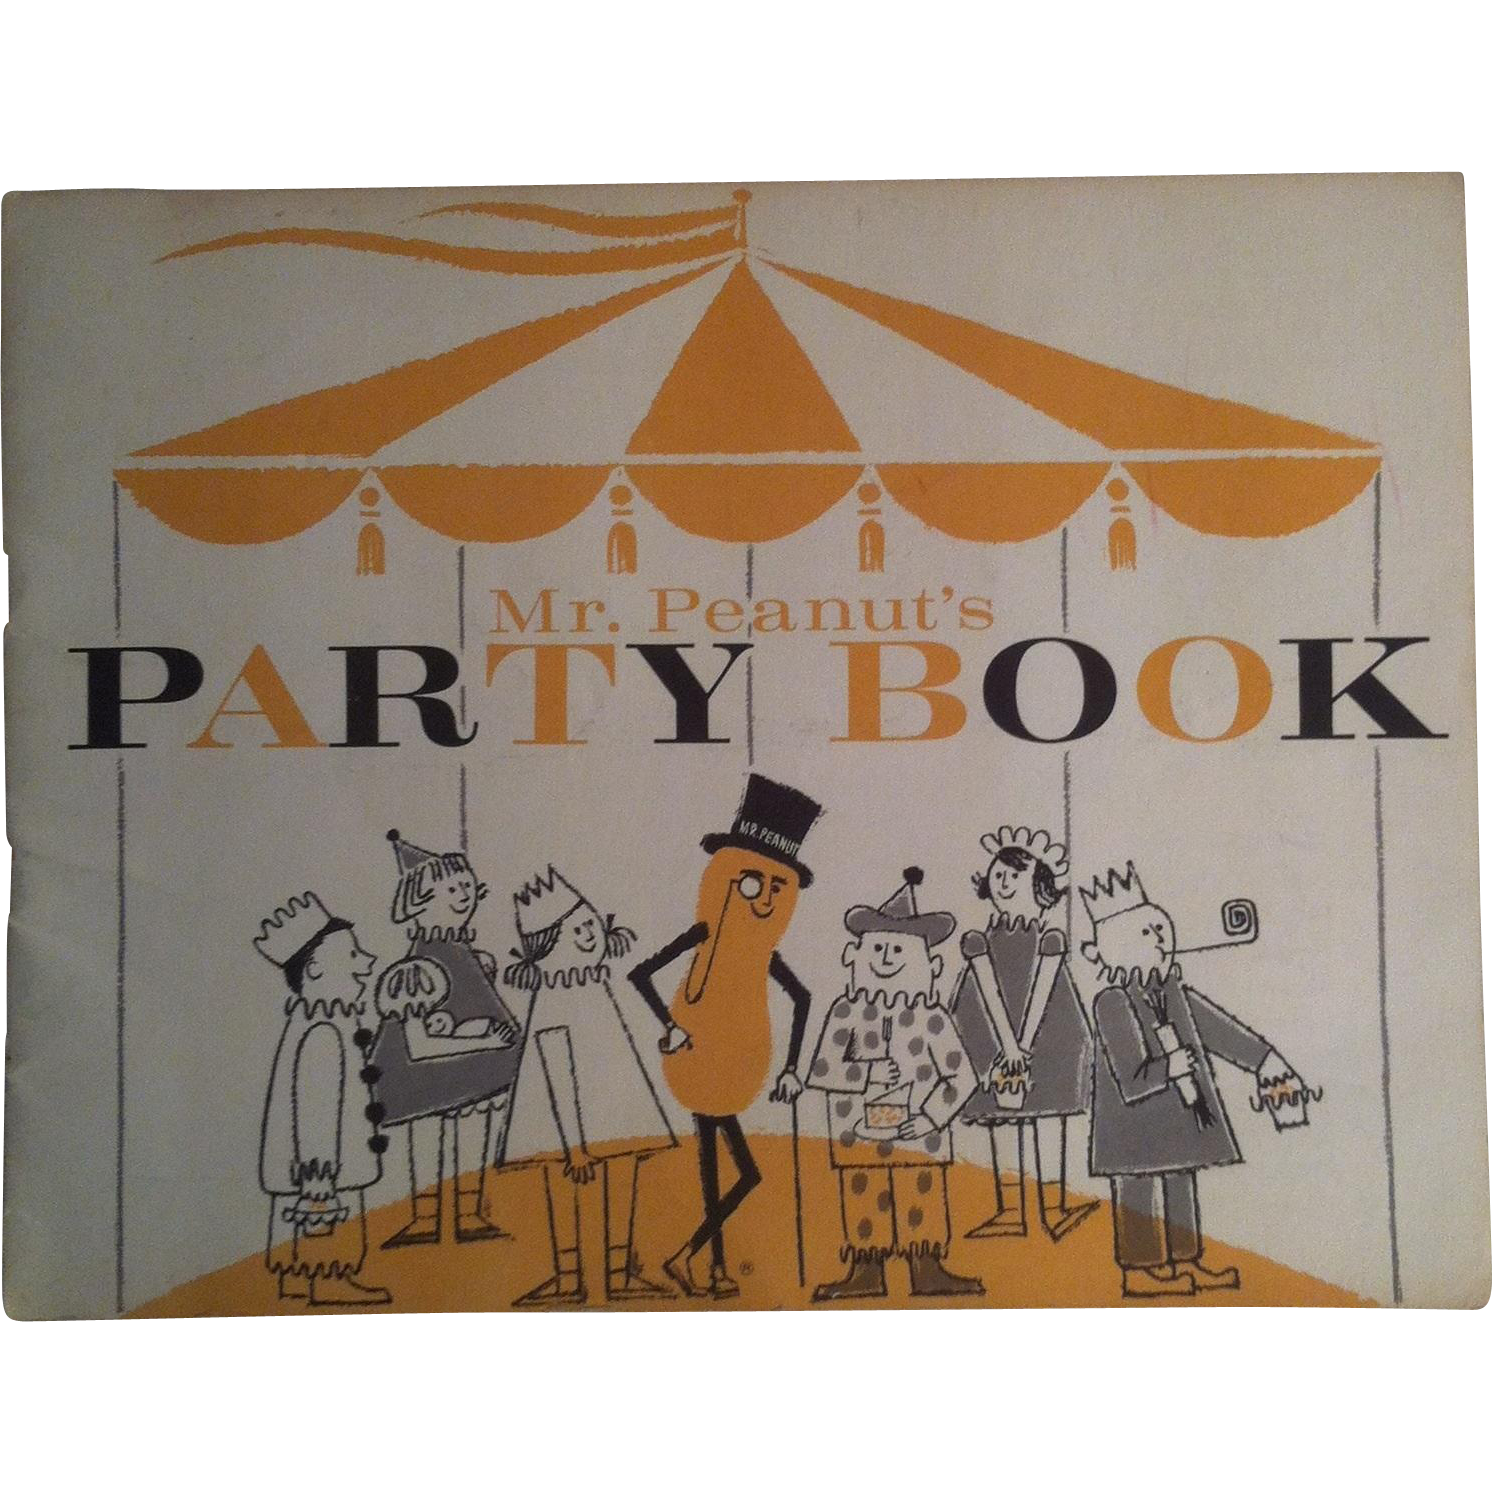 Mr Peanut's Party Book